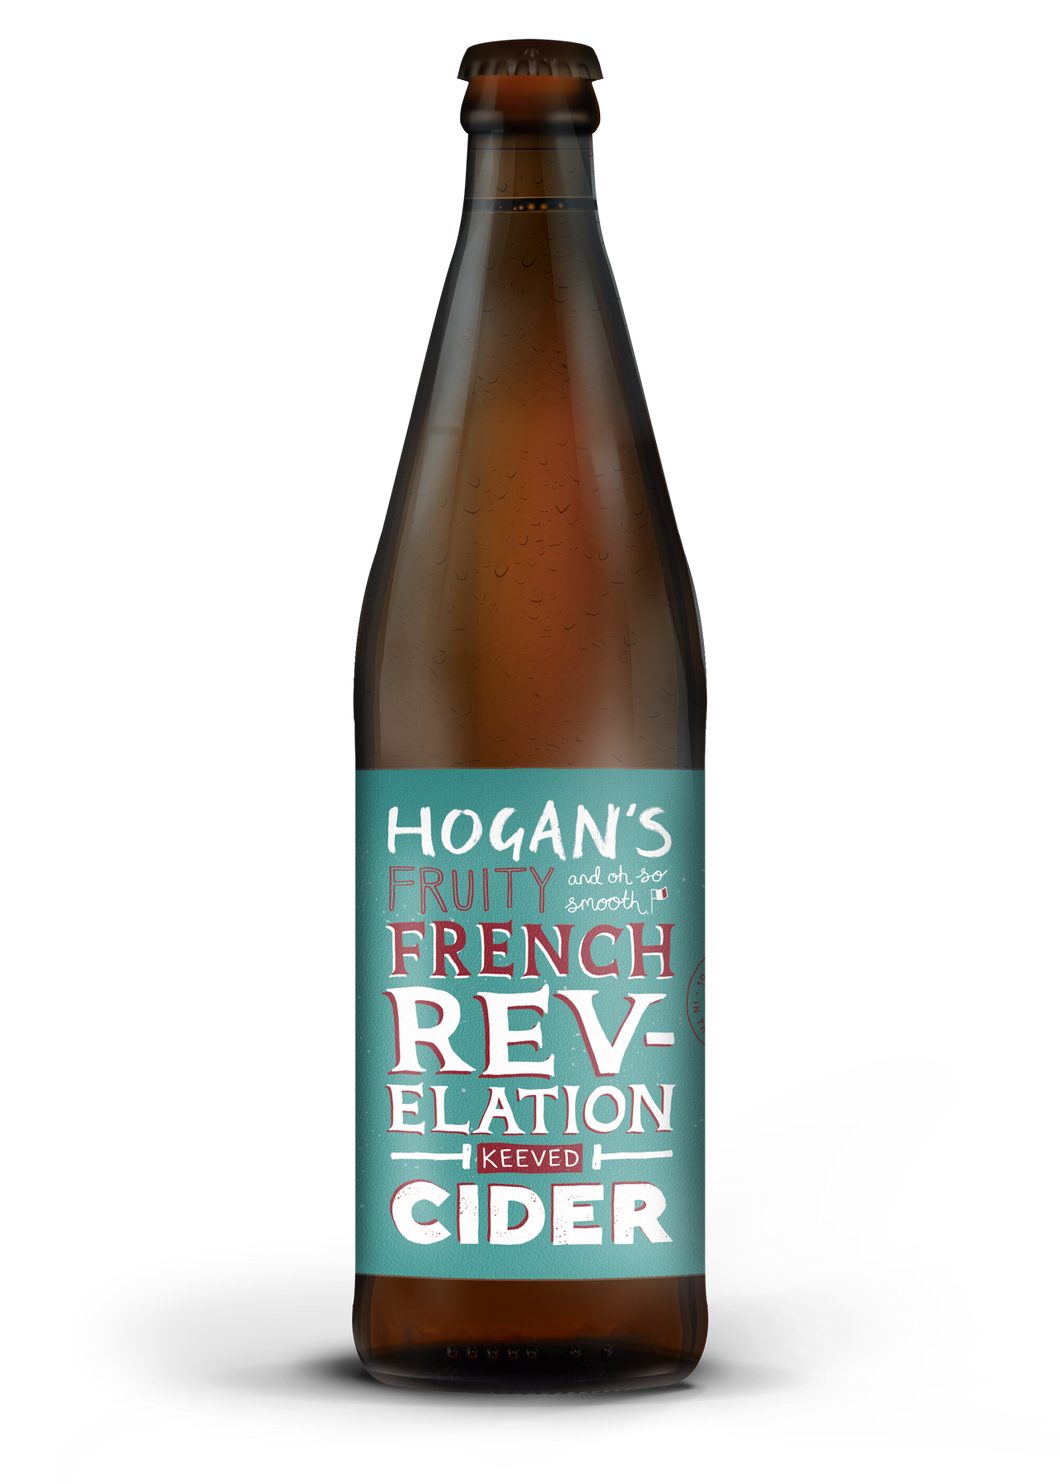 Hogan's French Revelation Cider 4.8% - 500ml Bottle